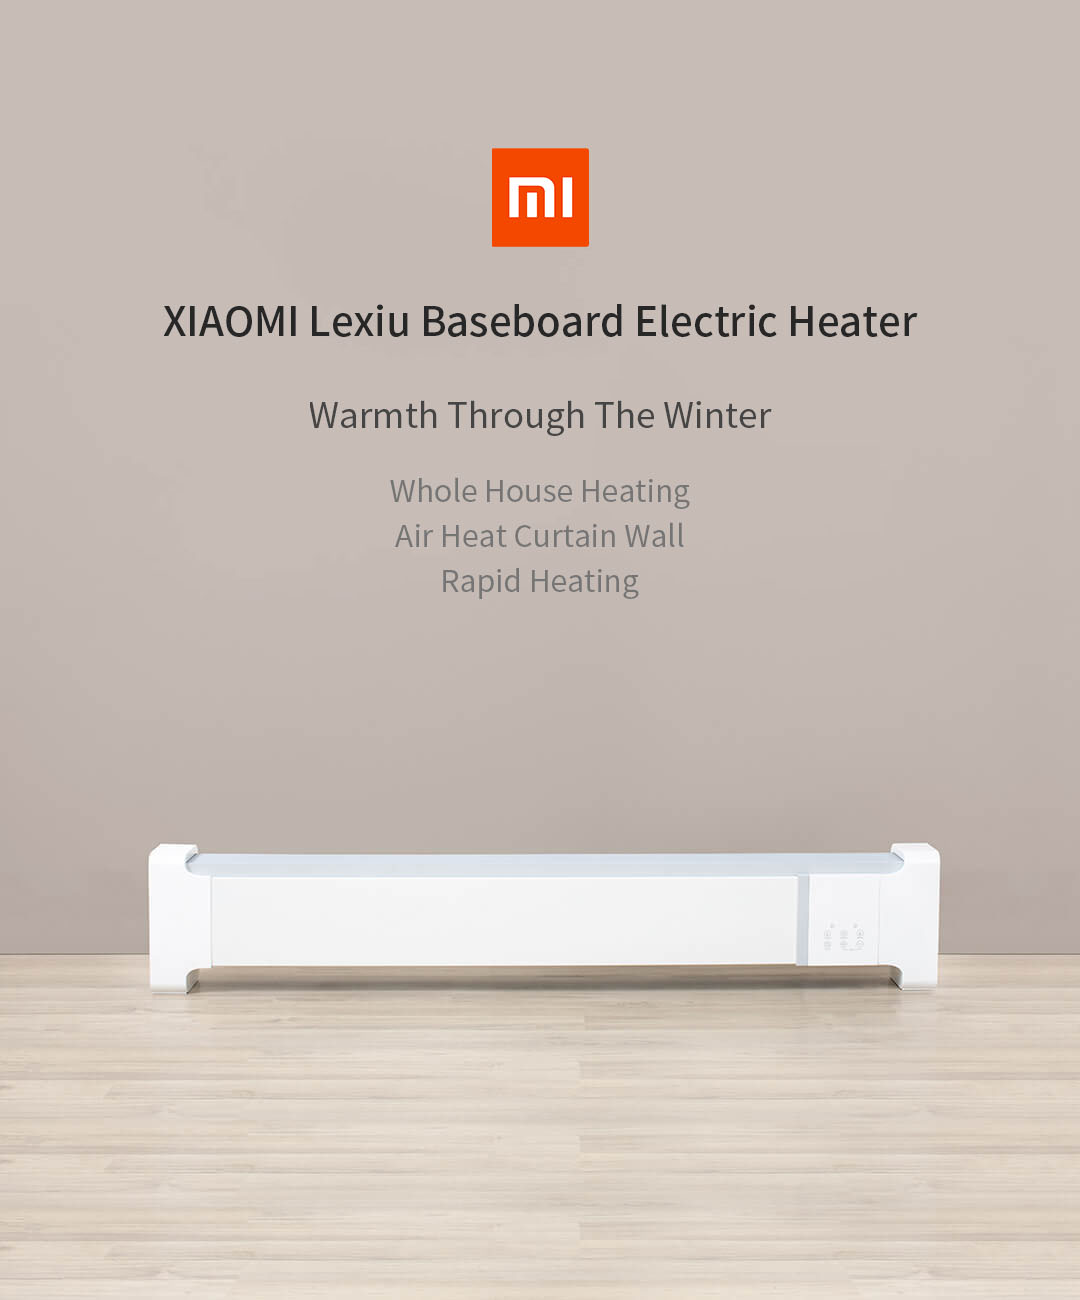 XIAOMI HS1 Lexiu Electric Heater Baseboard Electric Heater 5Sec Fast Heating Infrared Remote Control